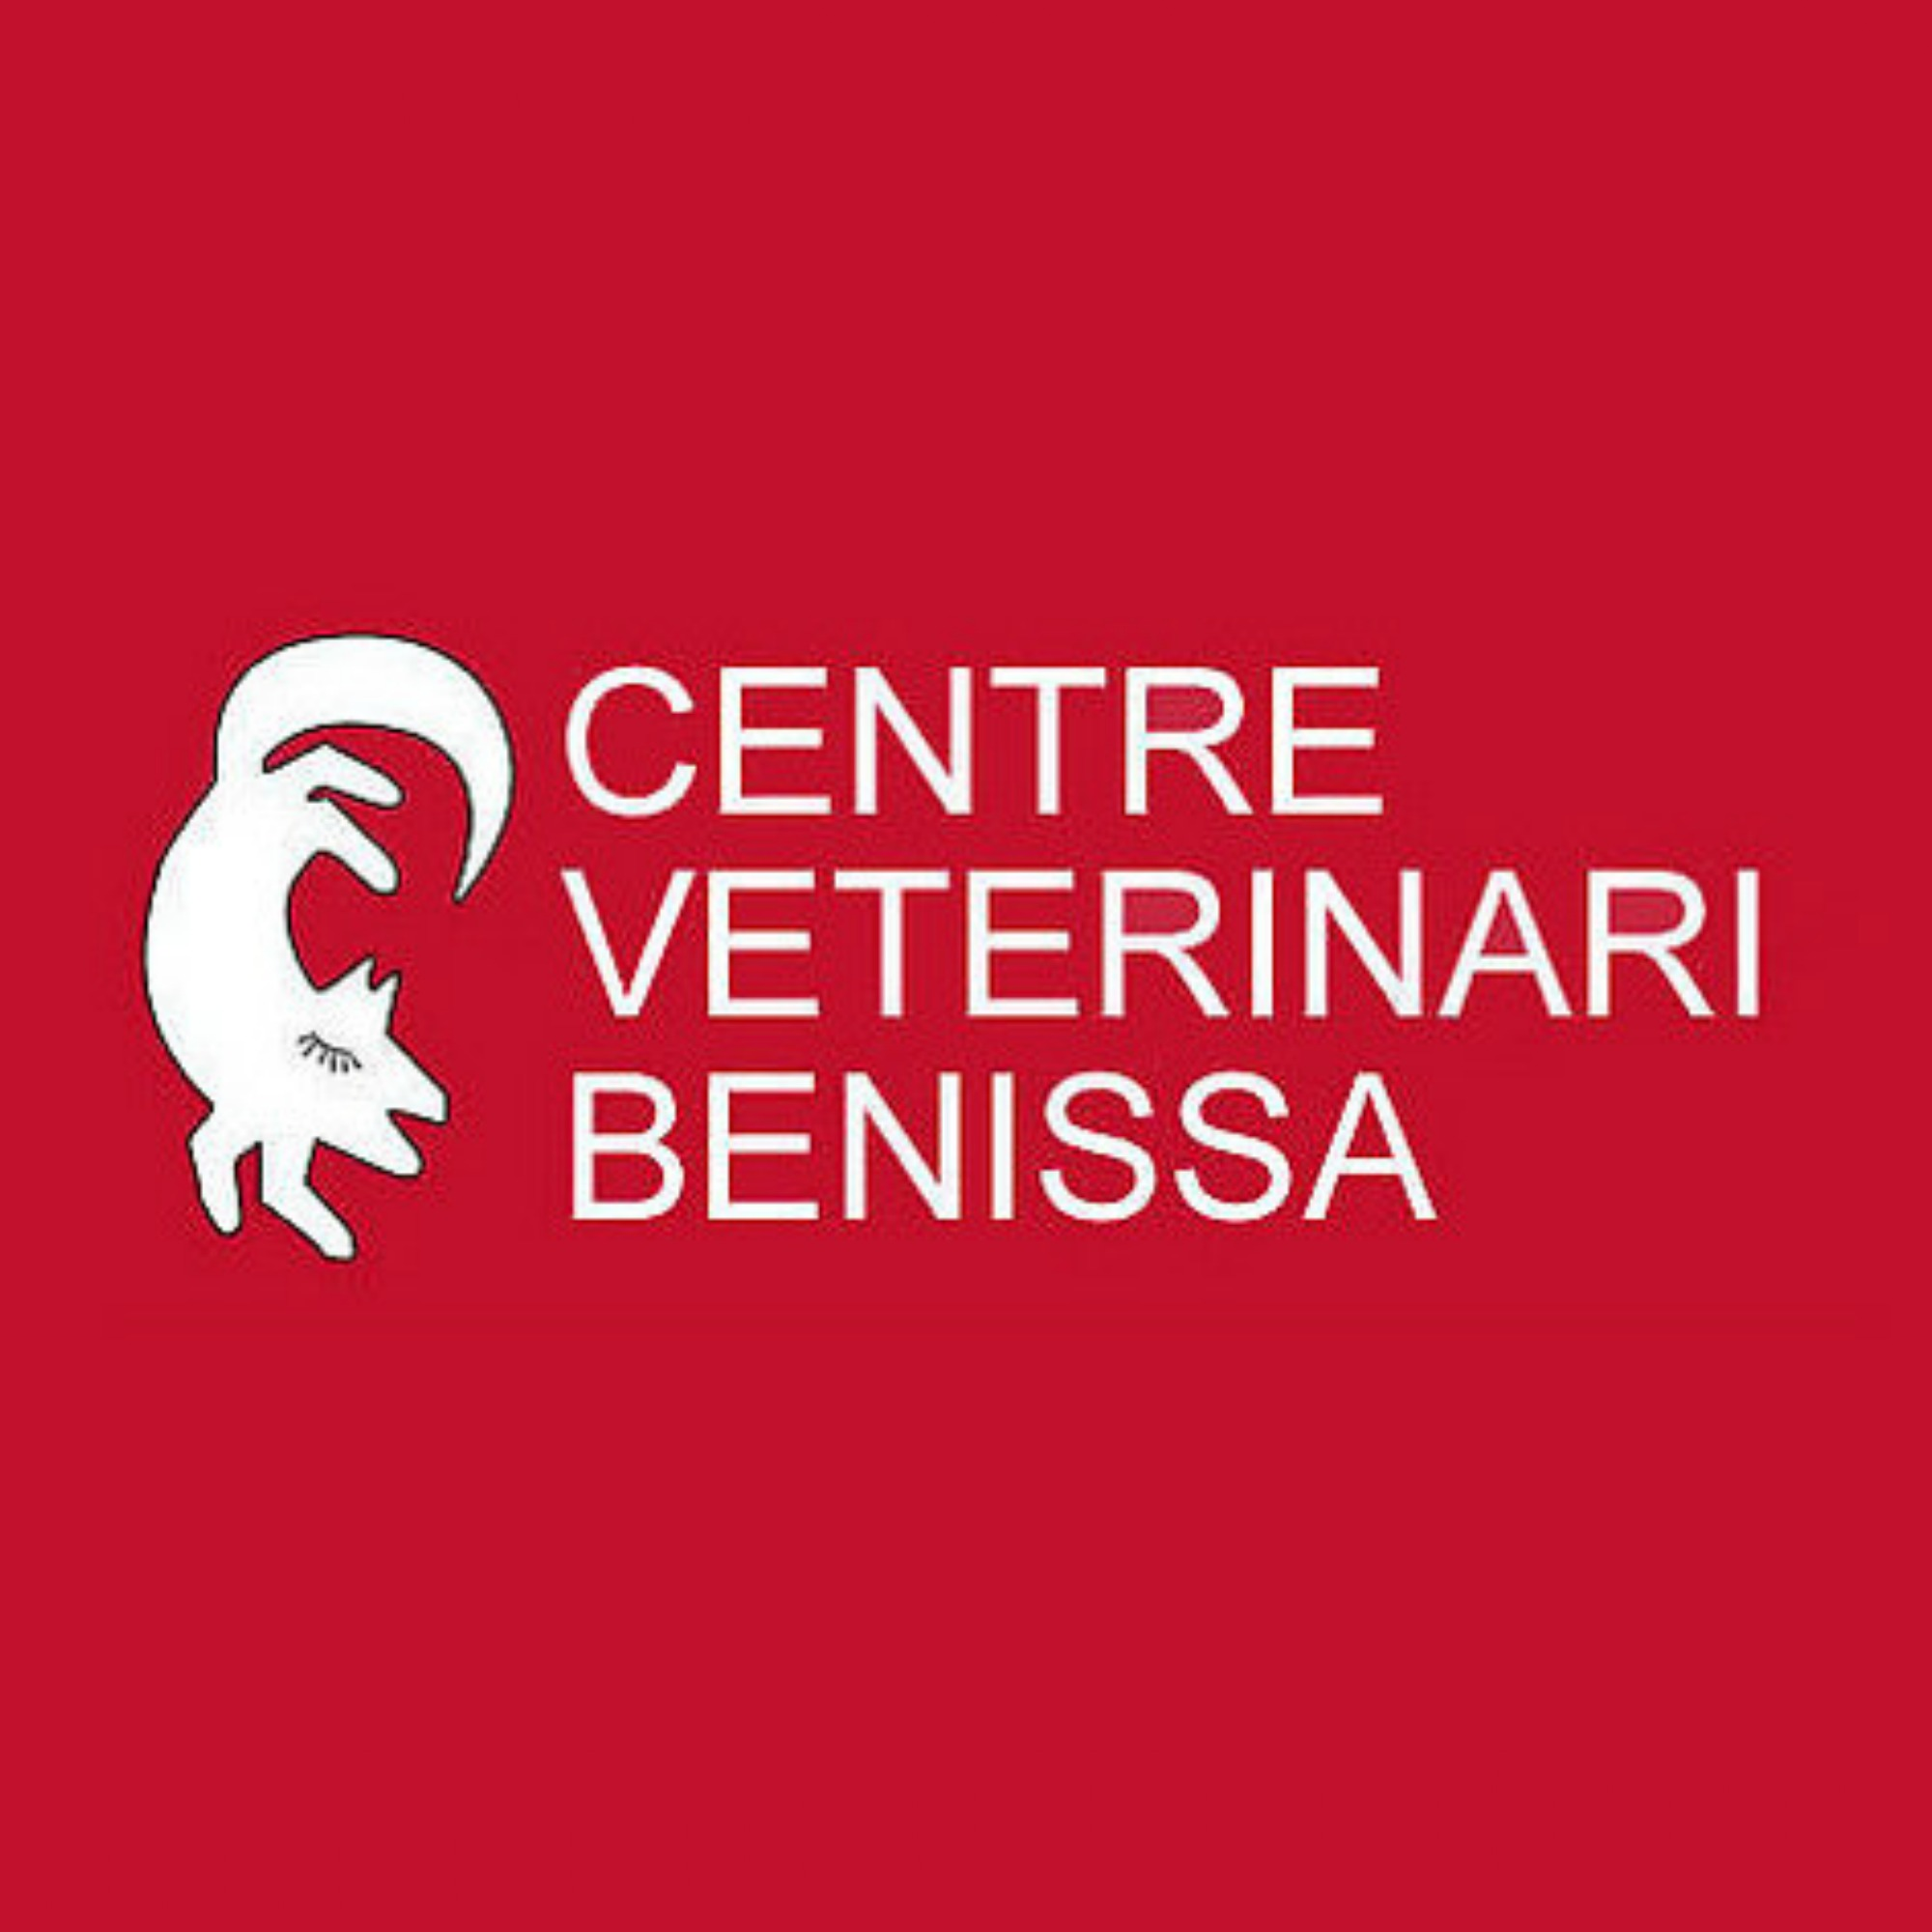 Centre Veterinari Benissa S.L. (Costa)